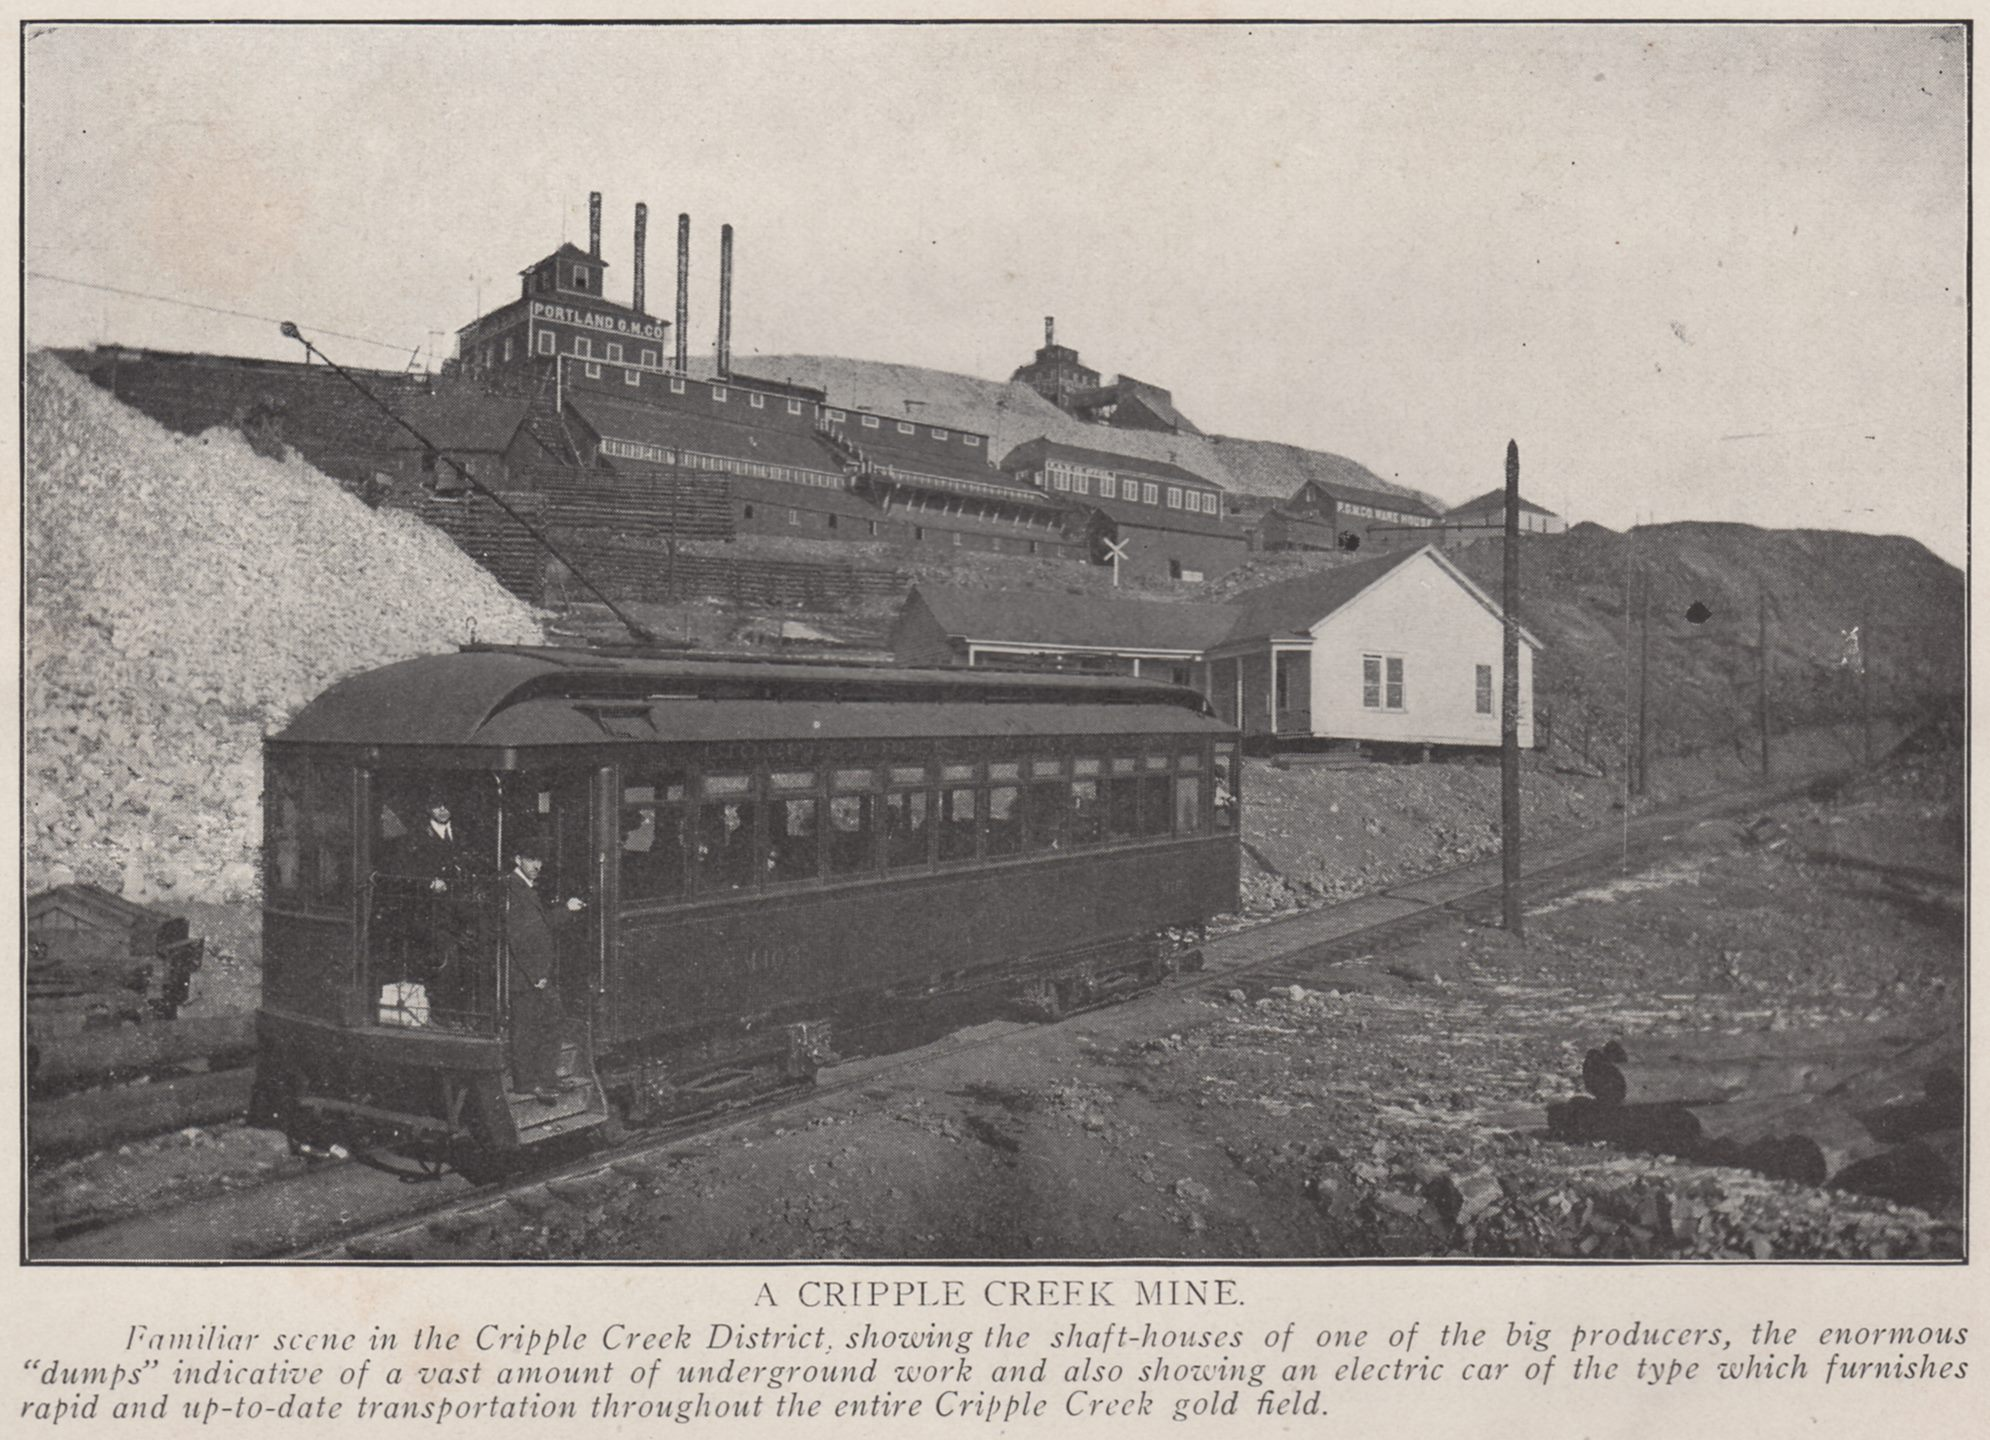 Familiar scene in the Cripple Creek District, showing the shaft-houses of one of the big producers, the enormous ''dumps'' indicative of a vast amound of underground work and also showing an electric car of the type which furnishes rapid and up-to-date transportation throughout the entire Cripple Creek gold field. -> This is along the original High Line, just before it crosses over the M.T. mainline on its way down Battle Mountain. The mines in the background is the Portland Nos. 1 & 2.